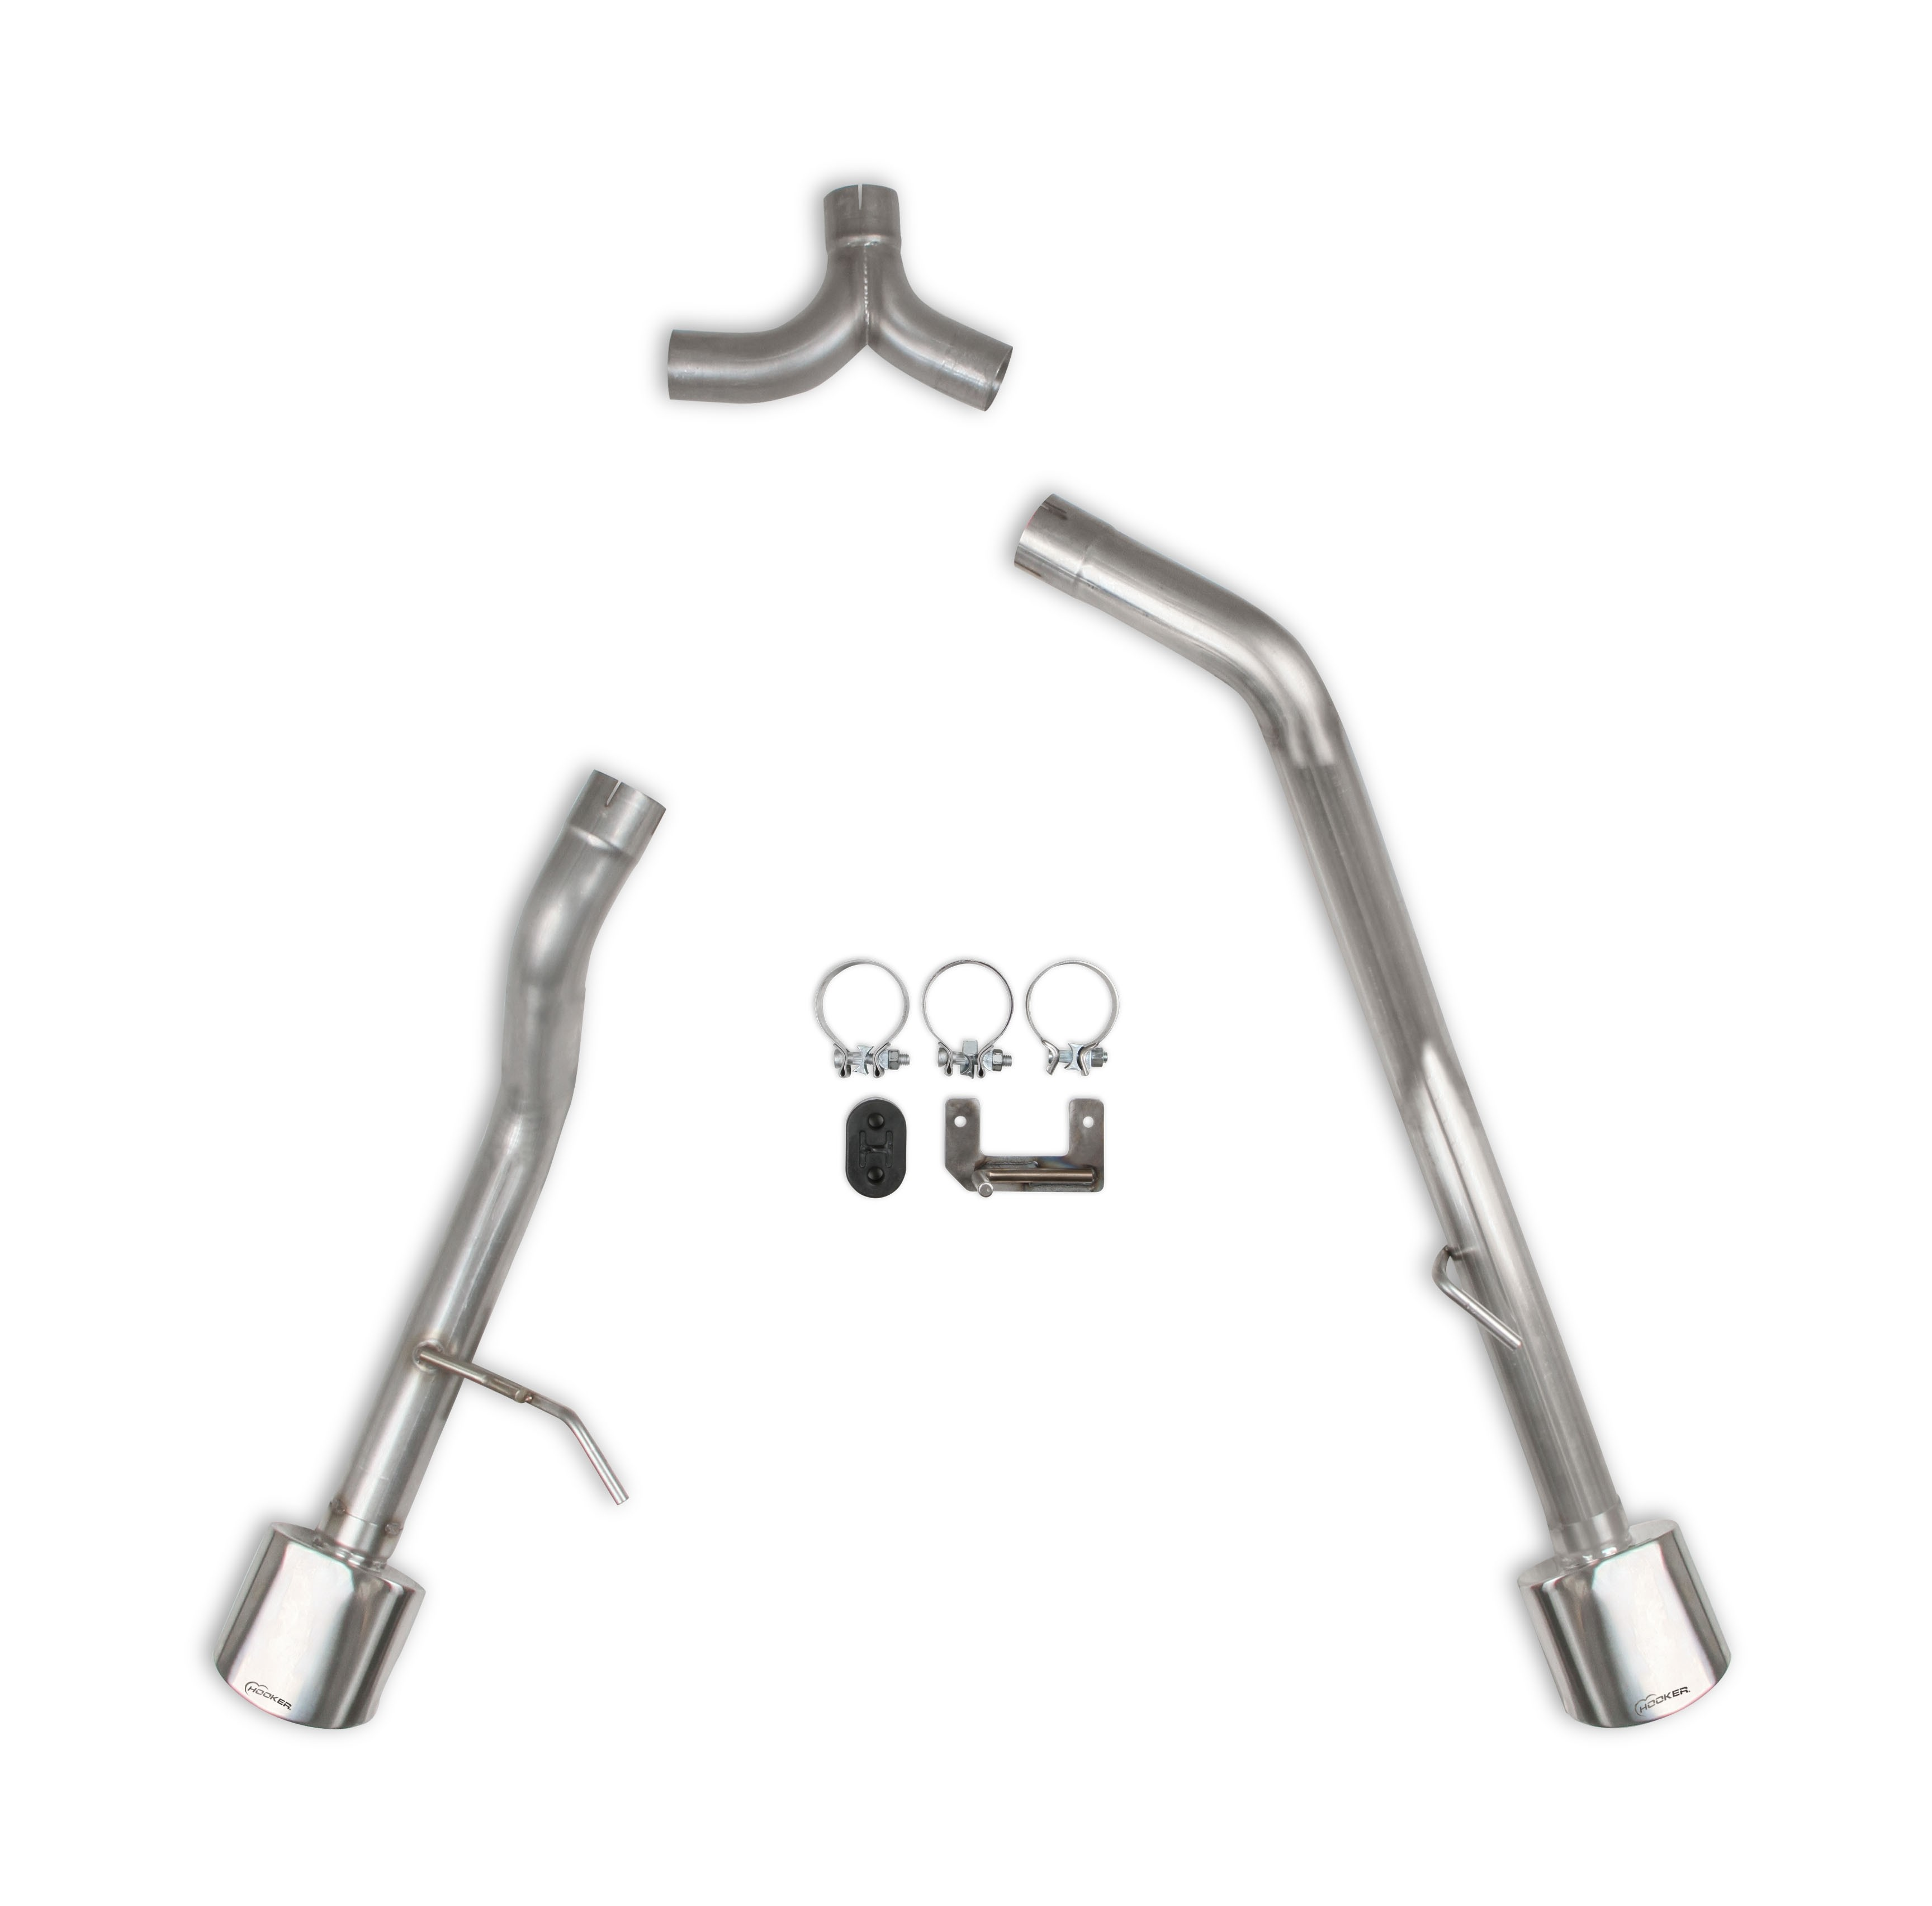 2020 Jeep Gladiator (JT) 3.6L V6, 2.5 inch Dual Exit Axle-Back Exhaust , 409SS